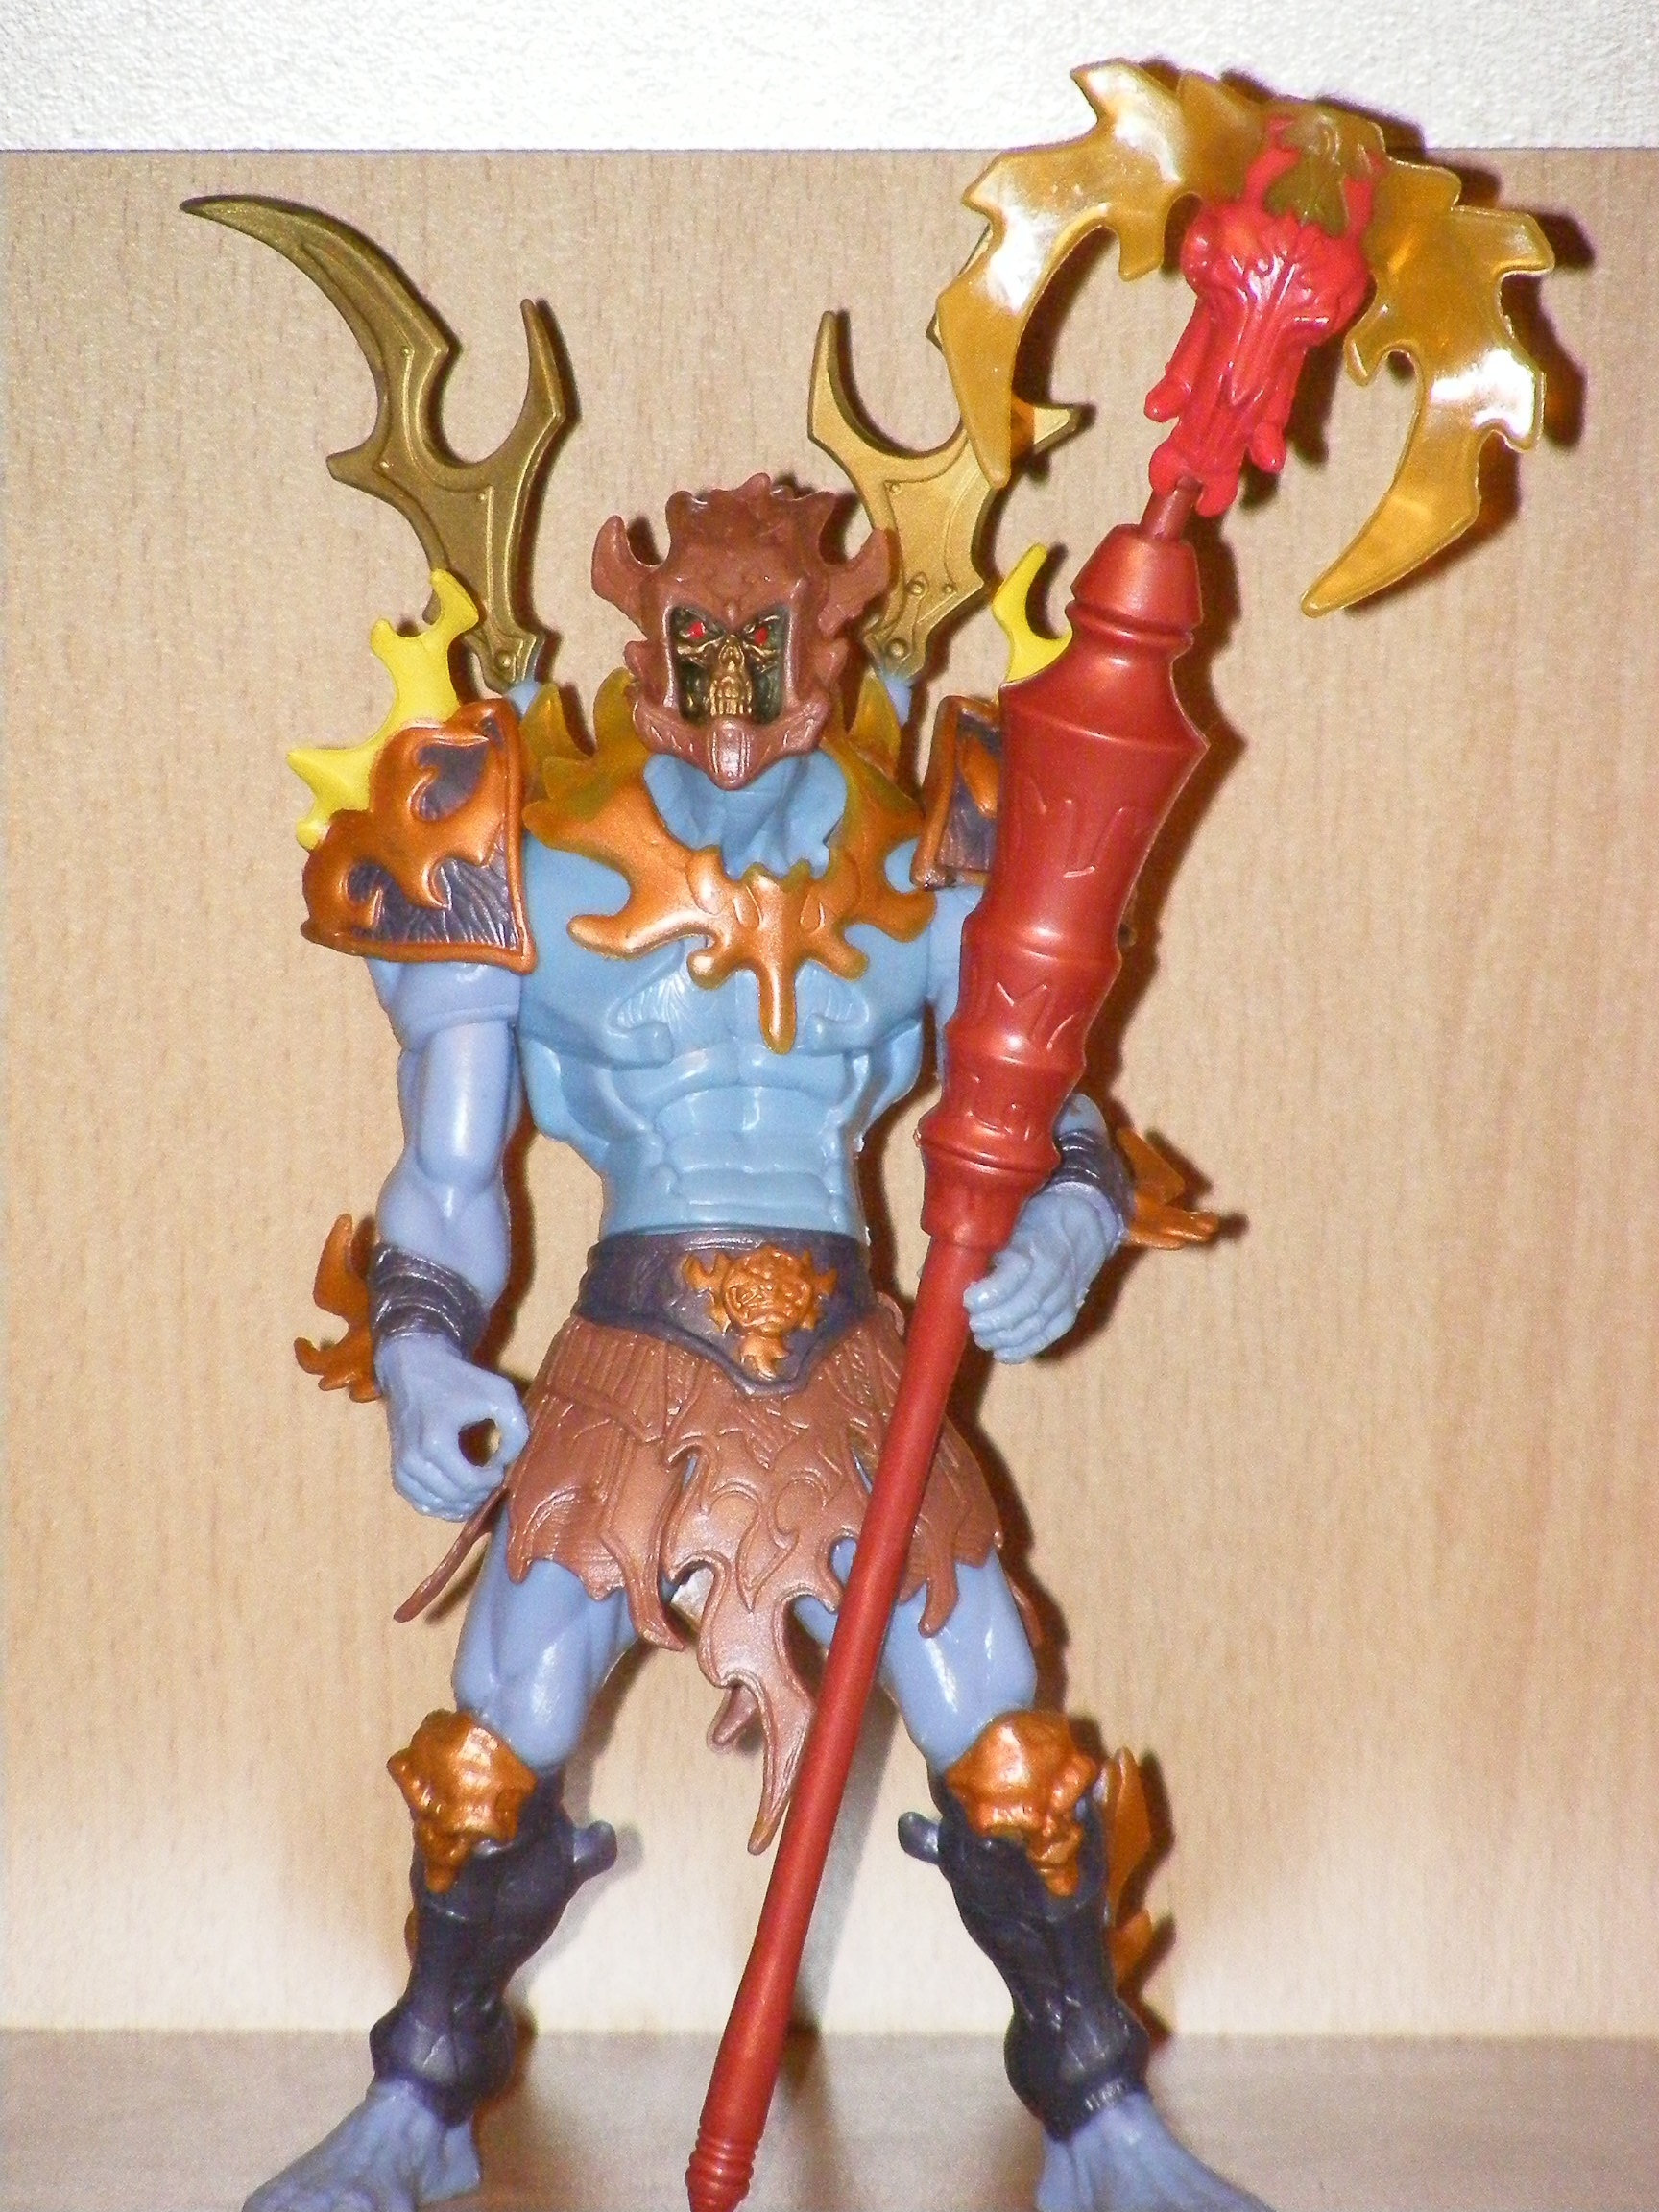 He Man Org Gt Toys Gt Bootleg Collections Gt 200x Chinese